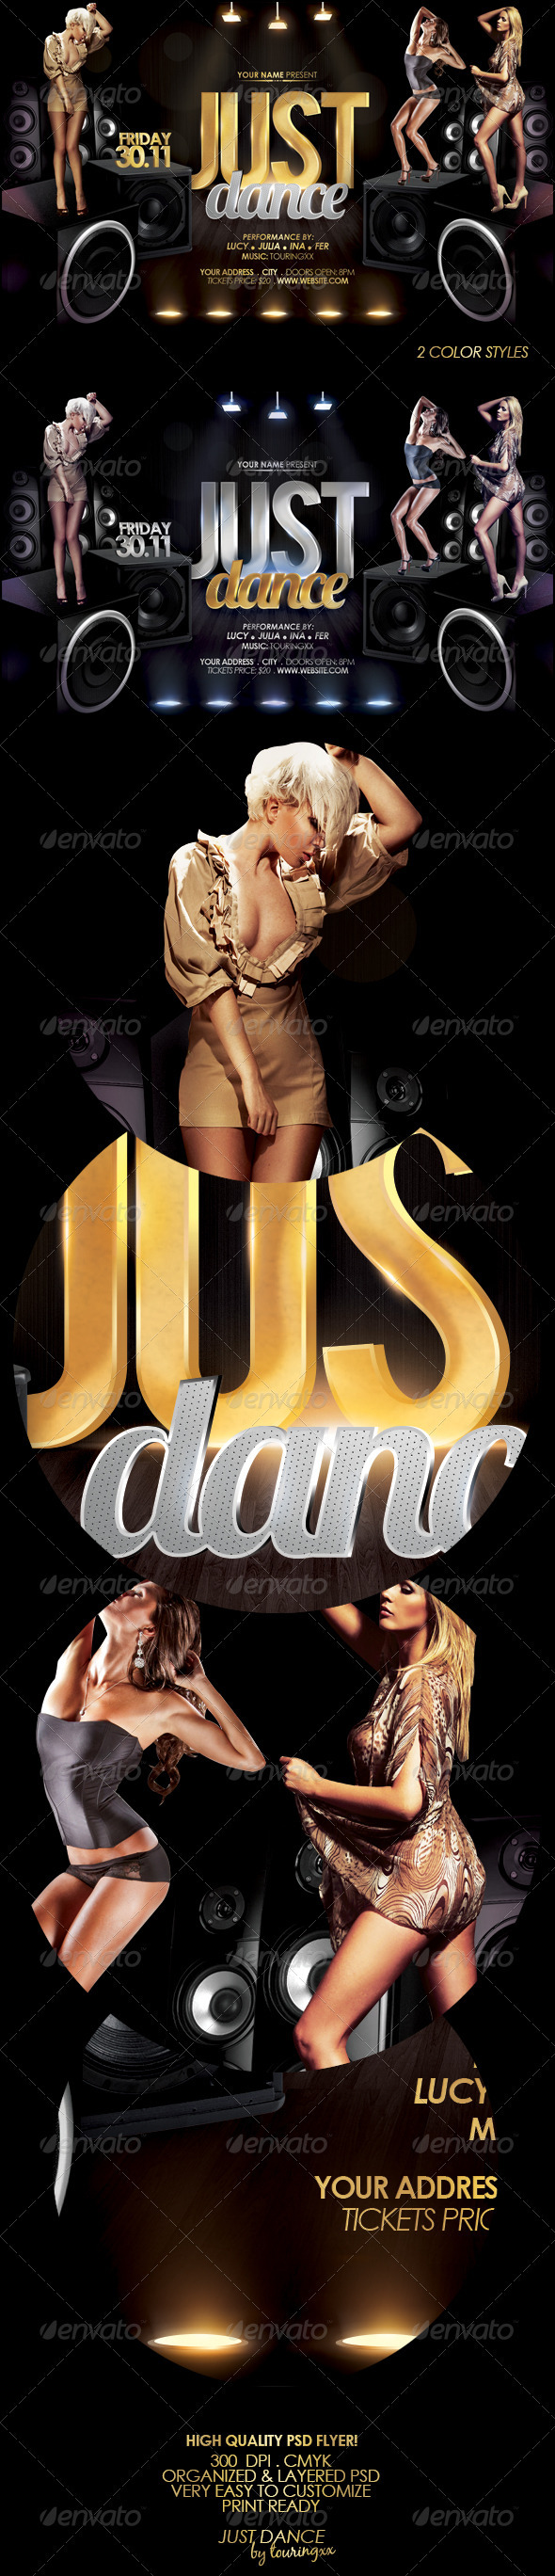 Just Dance Flyer Template - Clubs & Parties Events